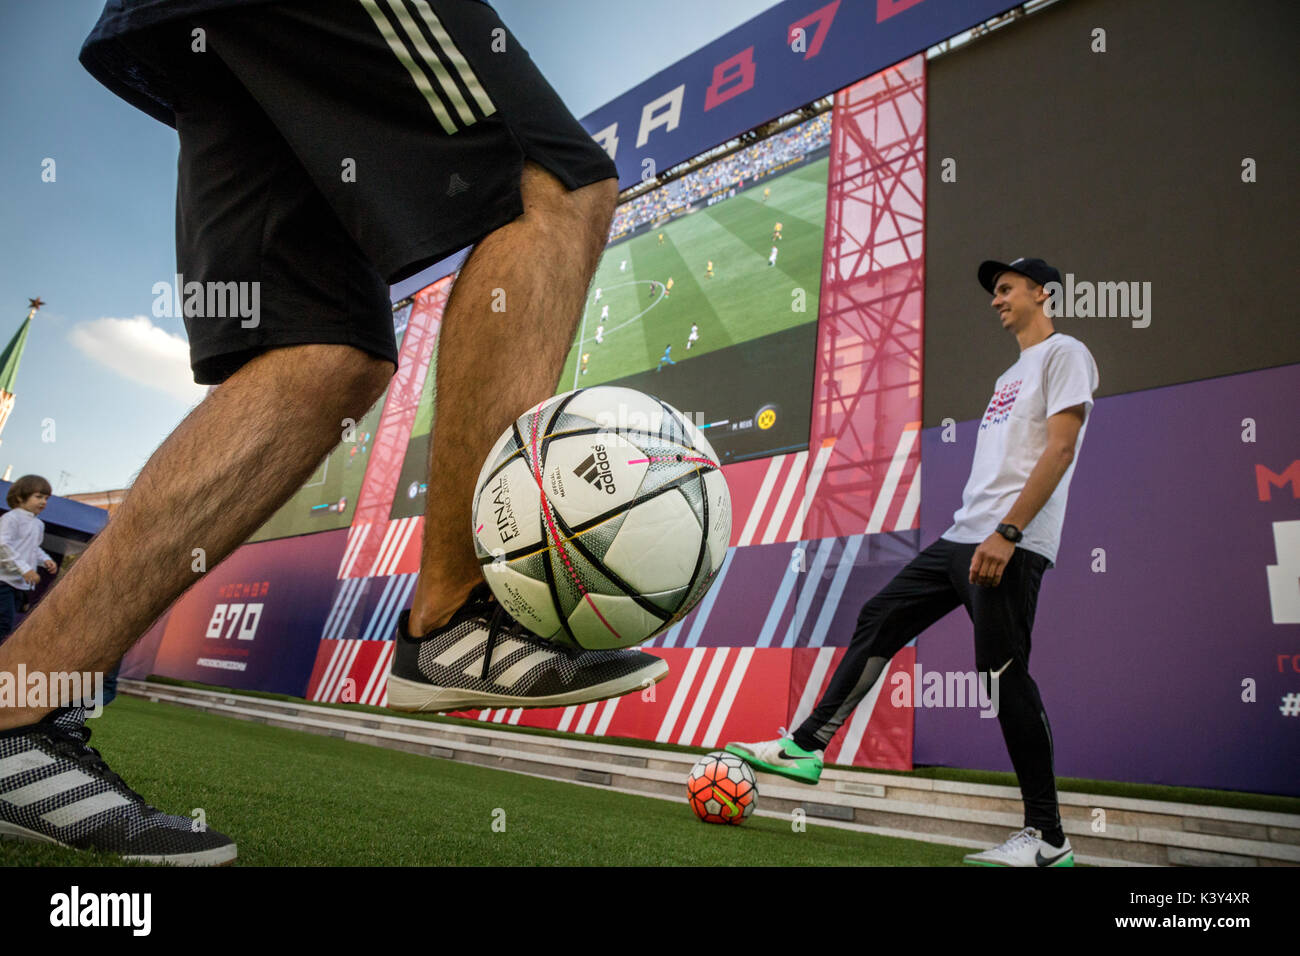 People play football on the site of the festival 'Moscow-870' with big screen FIFA 17 computer game on the Manezhnaya Square in Moscow, Russia - Stock Image